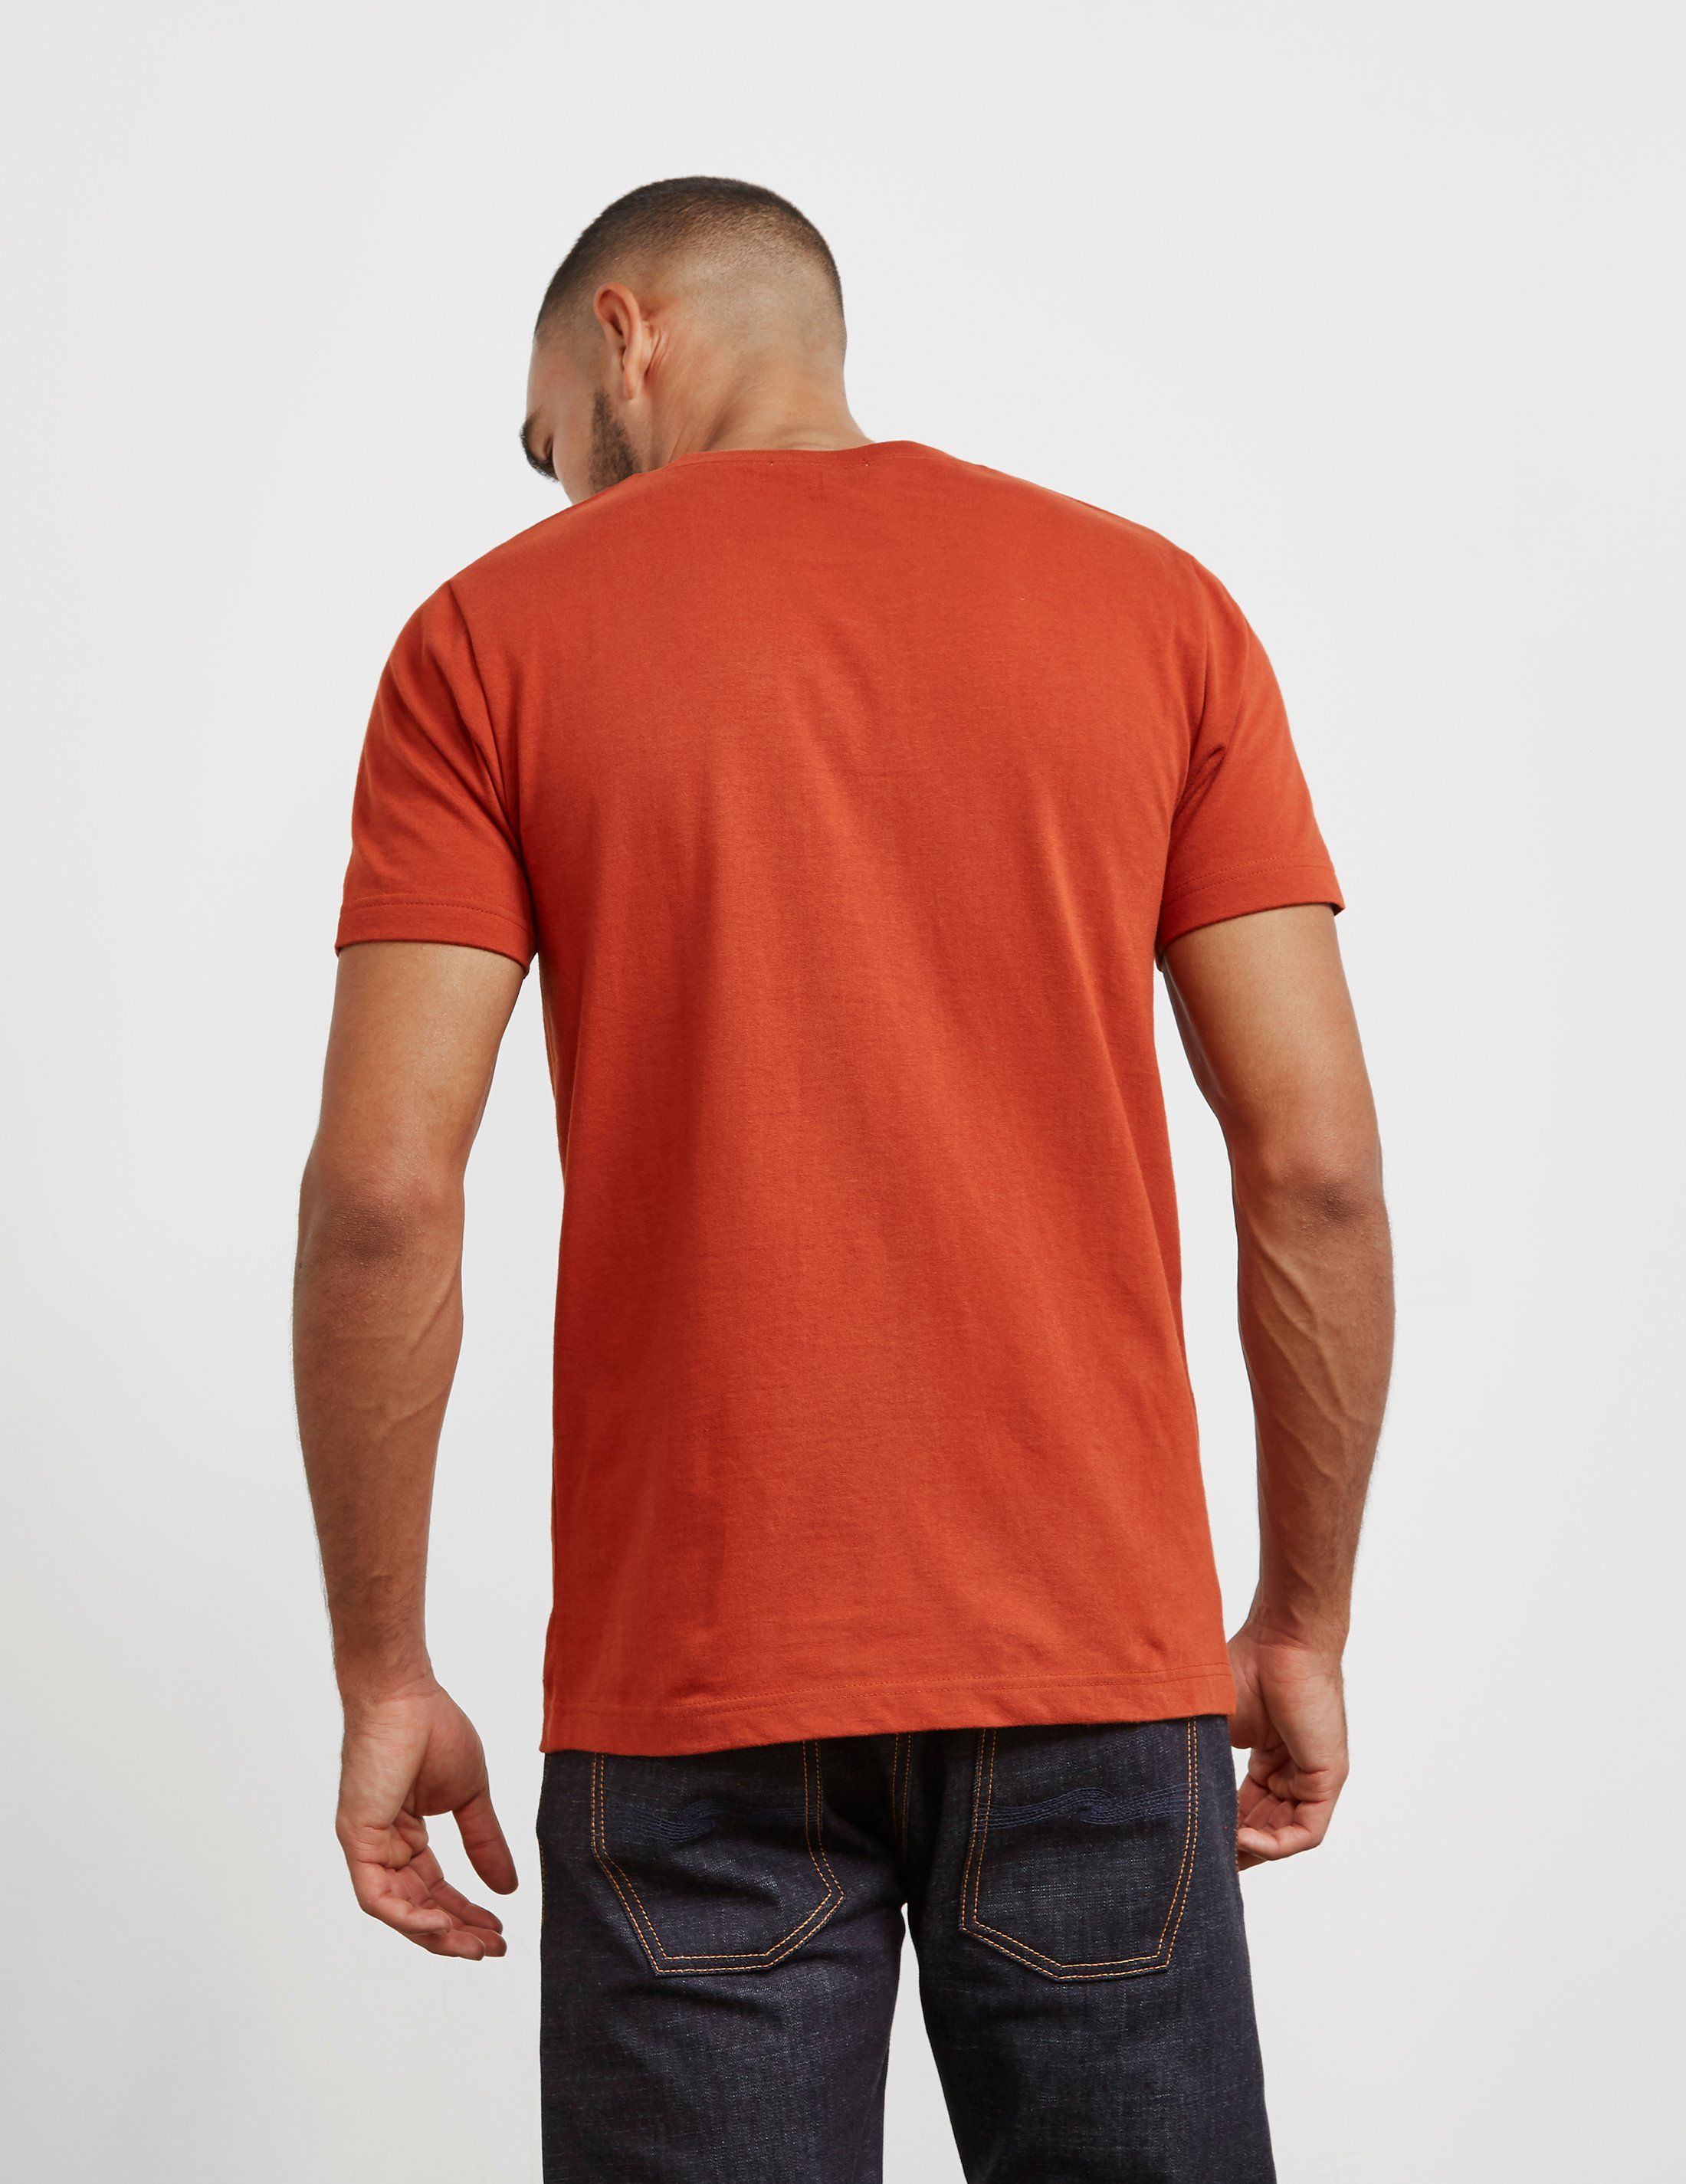 Nudie Jeans Worker Short Sleeve T-Shirt